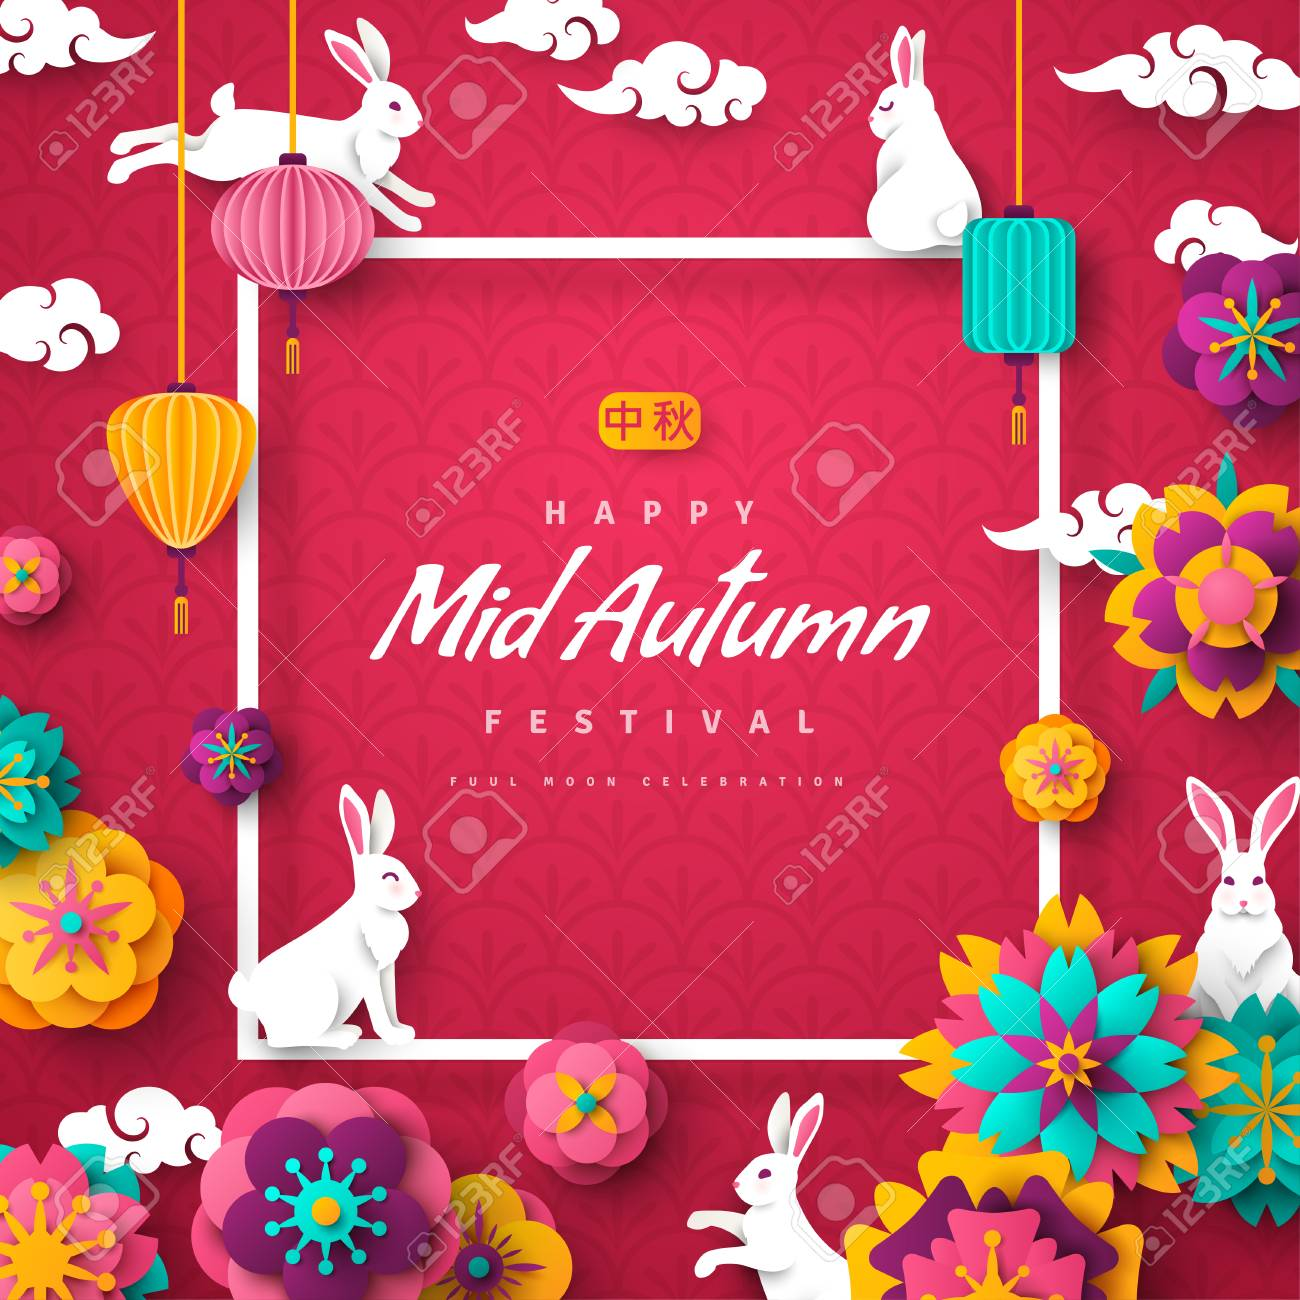 White rabbits with paper cut chinese clouds and flowers on pink background for Chuseok festival. Hieroglyph translation is Mid autumn. Square frame with place for text. Vector illustration. - 102959298